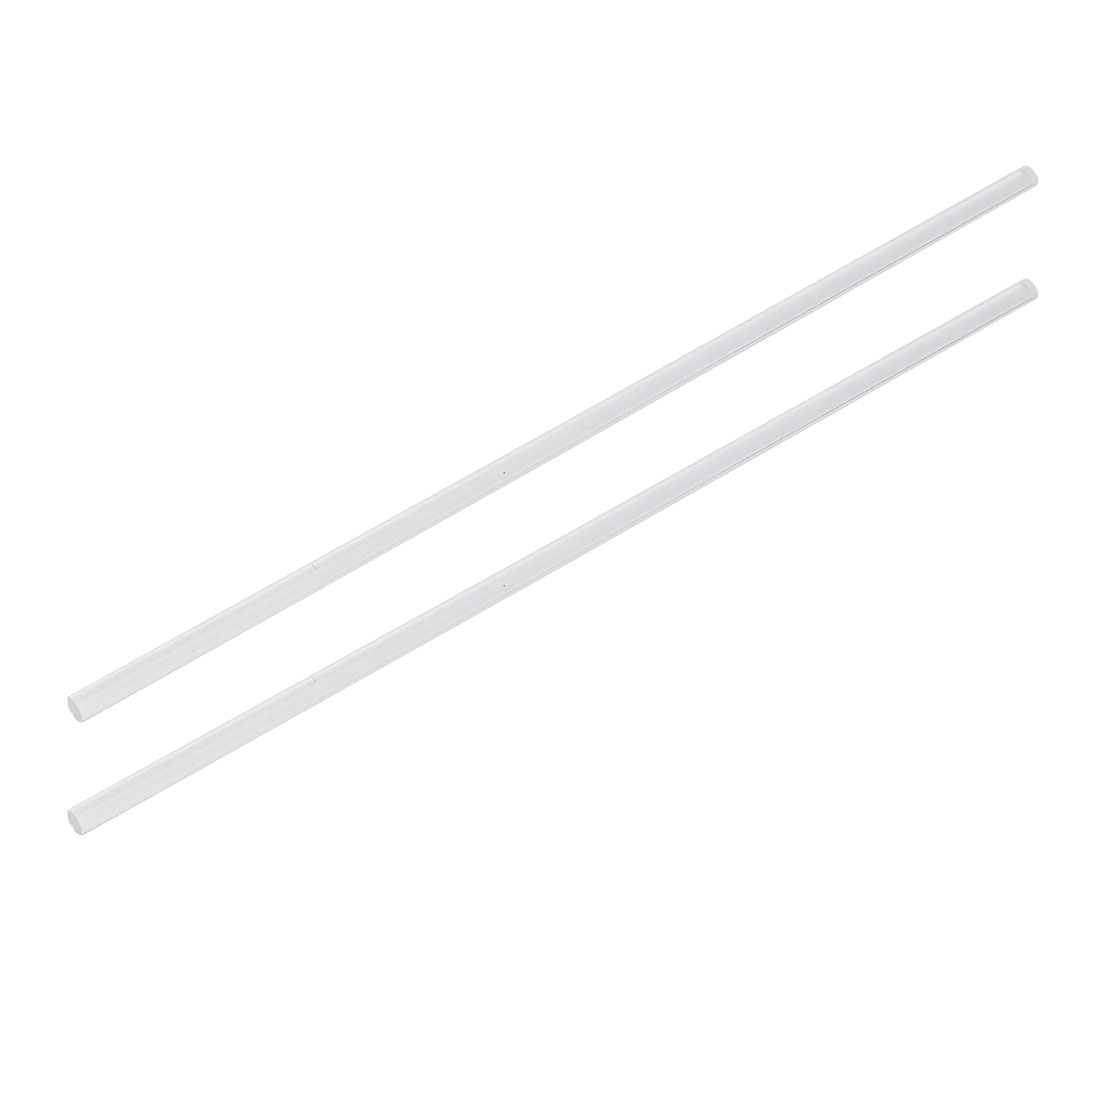 5mm Dia 10 Inch Long Solid Acrylic Round Rod PMMA Bar Clear 2pcs